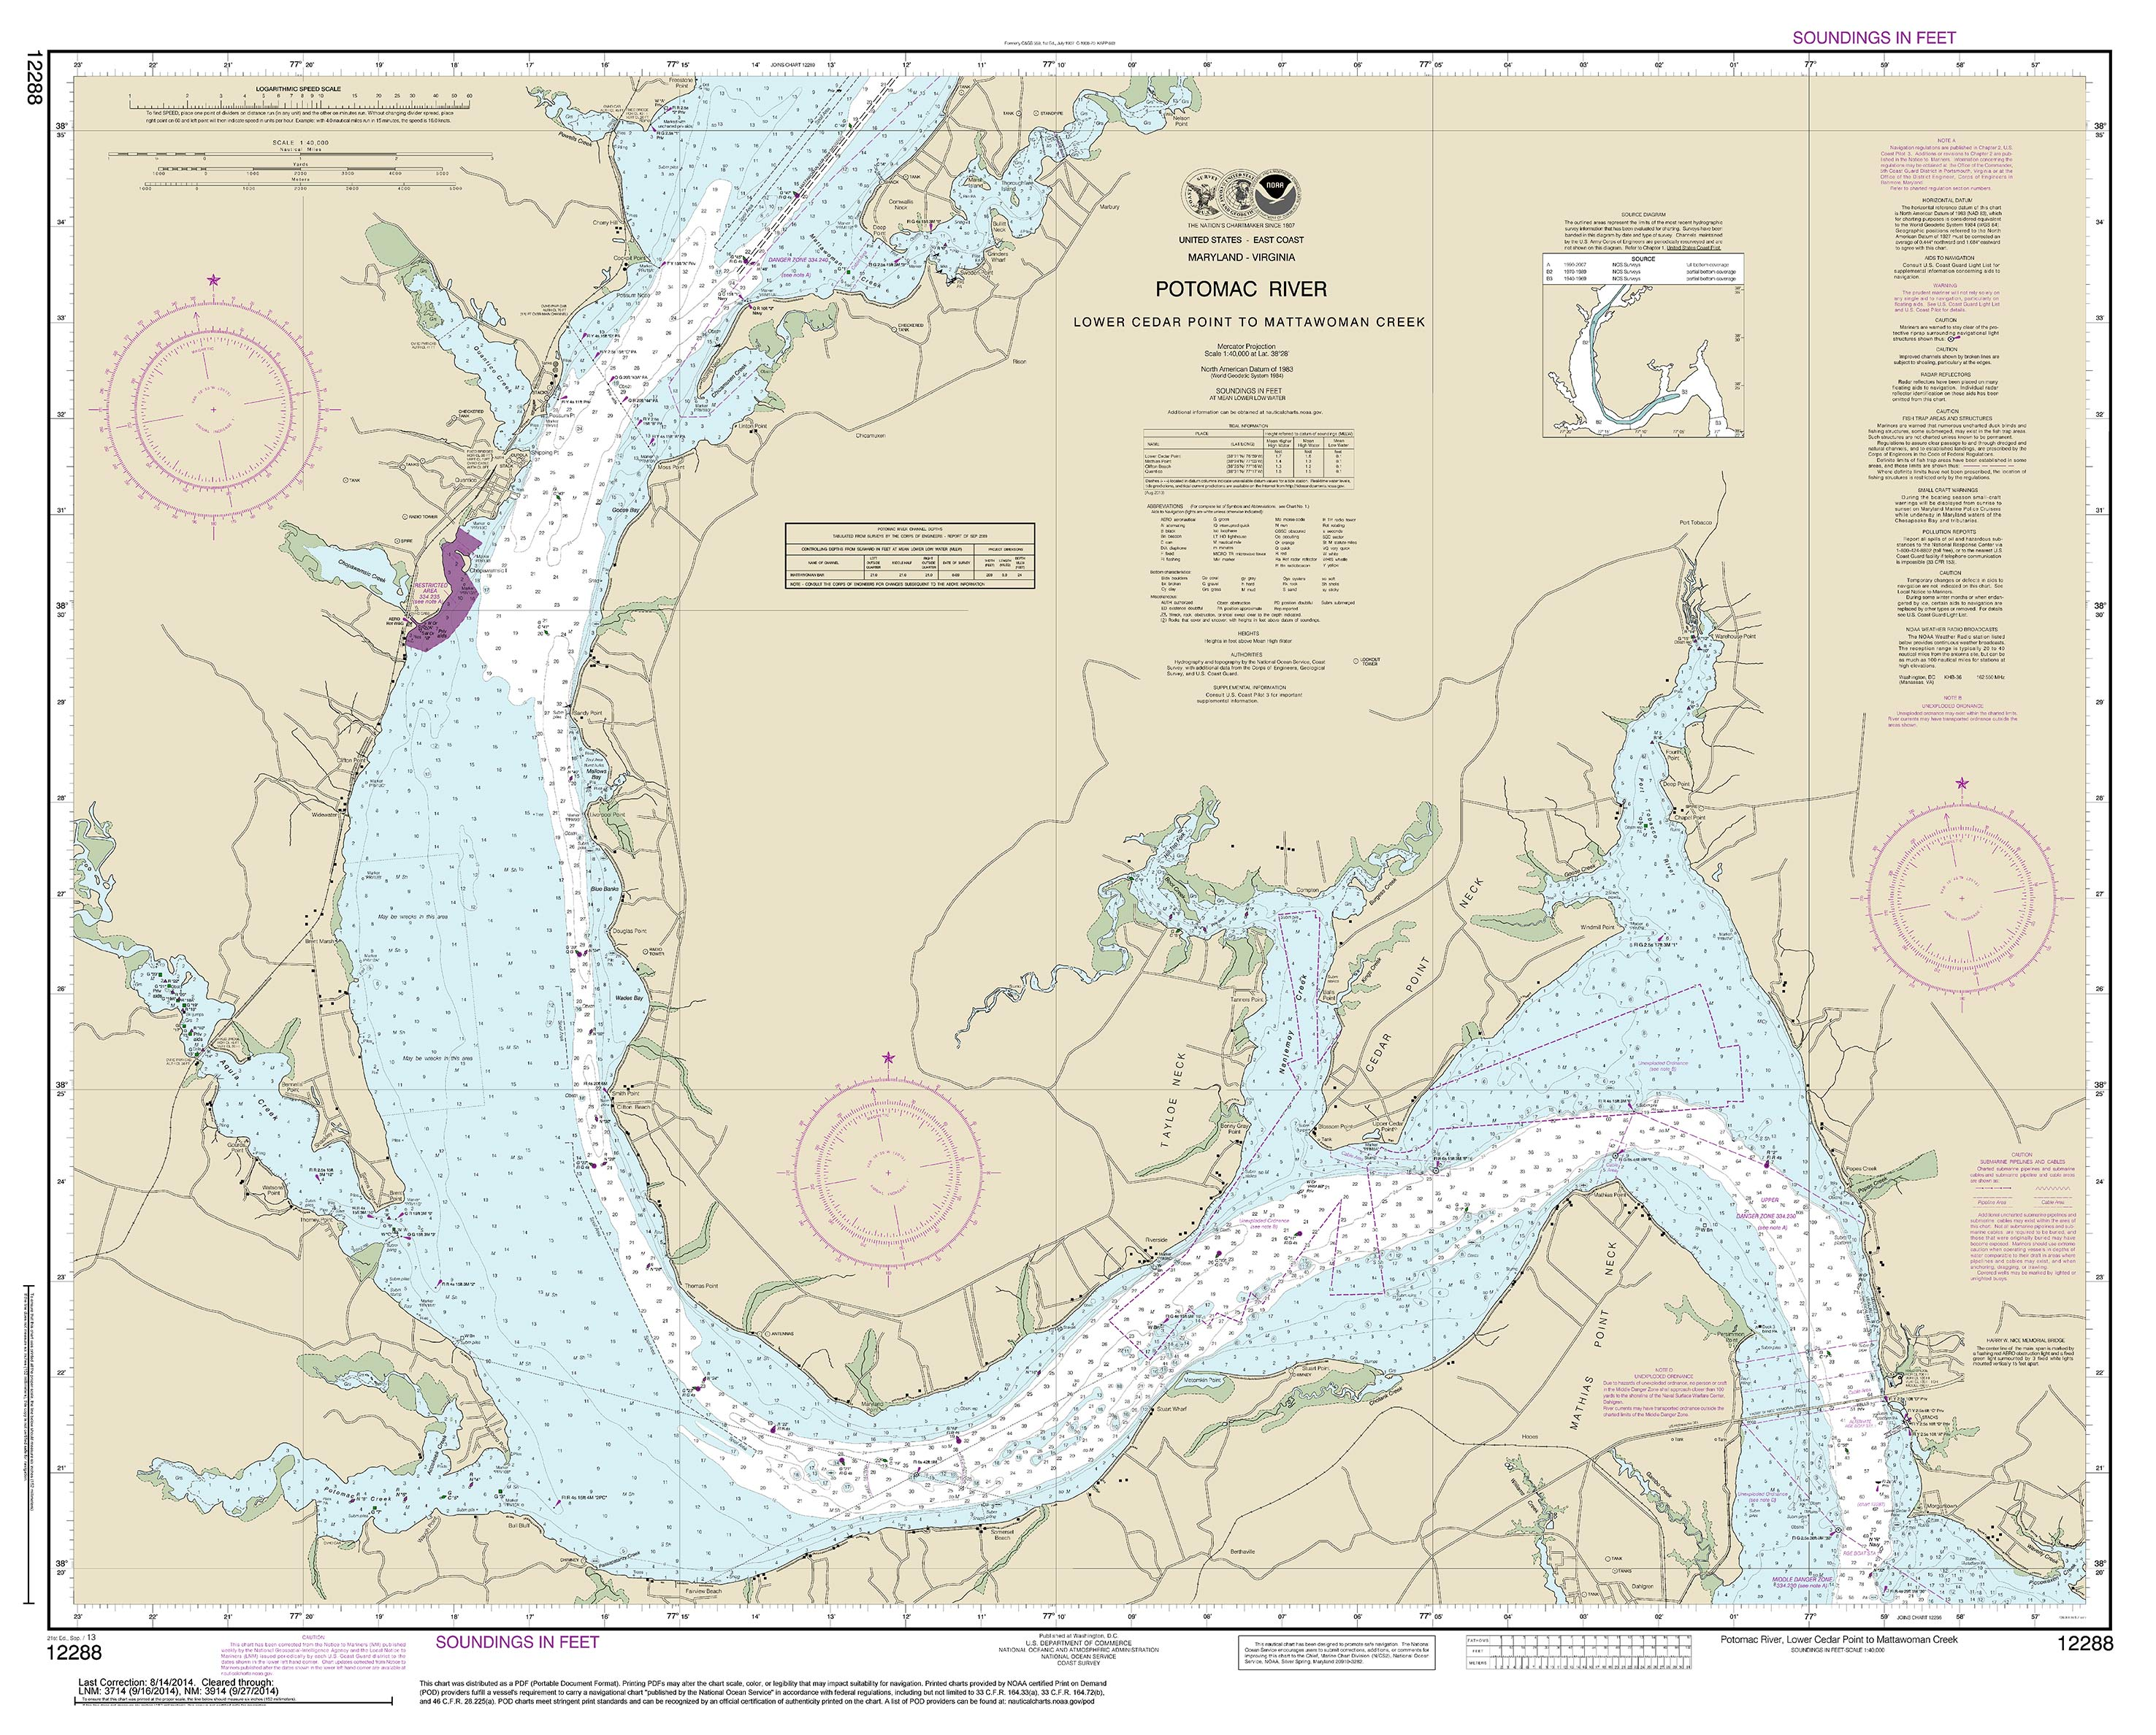 Modern Nautical Charts of the Chesapeake Bay